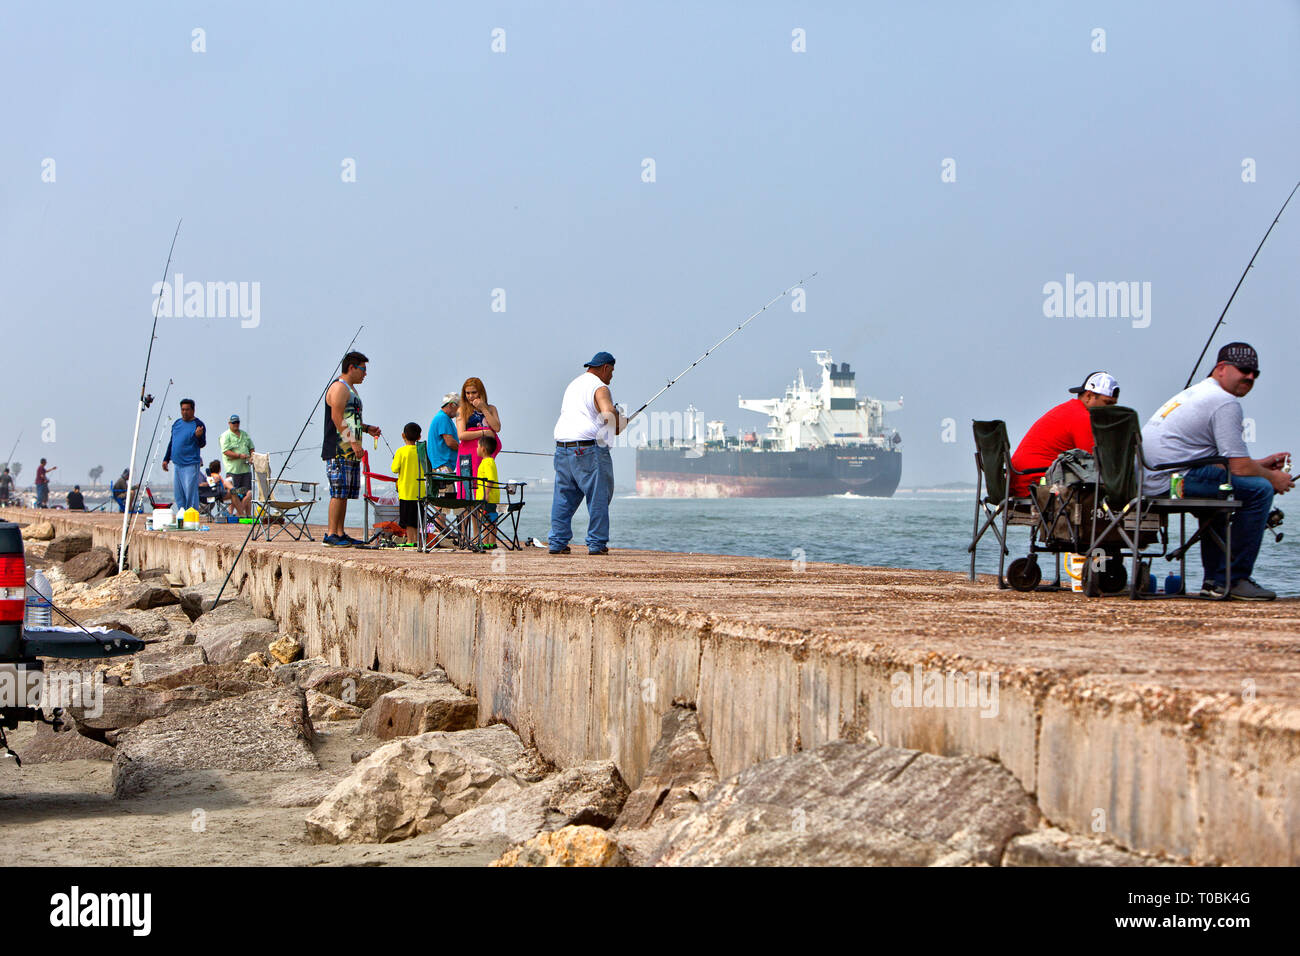 Families with young children,  fishermen,  fishing at Port Aransas Jetty,  Port Aransas Jetty which extends south into the Gulf Of Mexico. - Stock Image